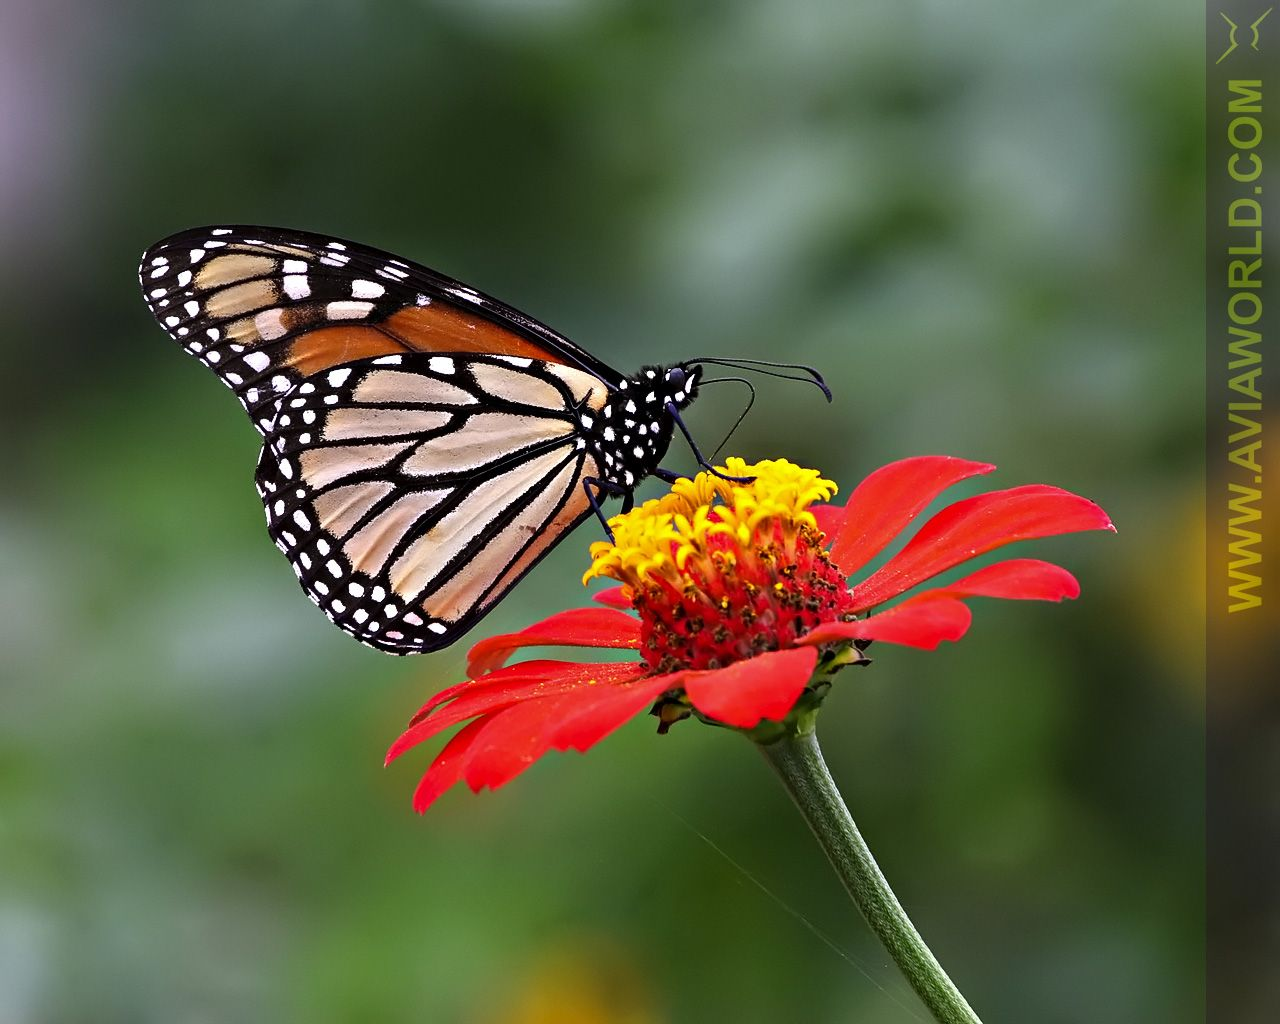 Butterfly Butterfly Wallpaper 1280 X 1024 Rightclick To